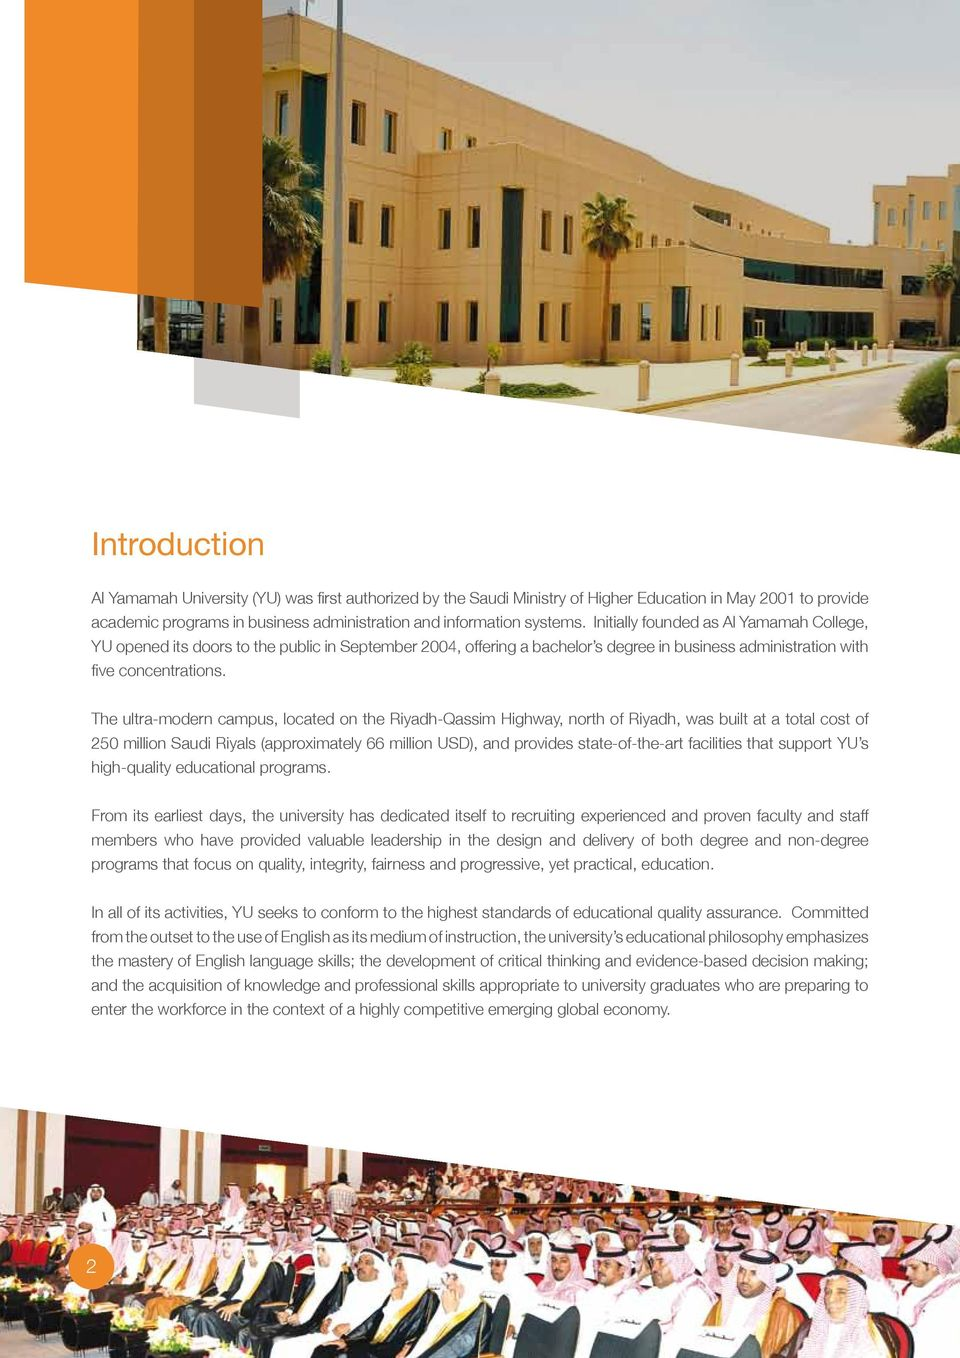 The ultra-modern campus, located on the Riyadh-Qassim Highway, north of Riyadh, was built at a total cost of 250 million Saudi Riyals (approximately 66 million USD), and provides state-of-the-art